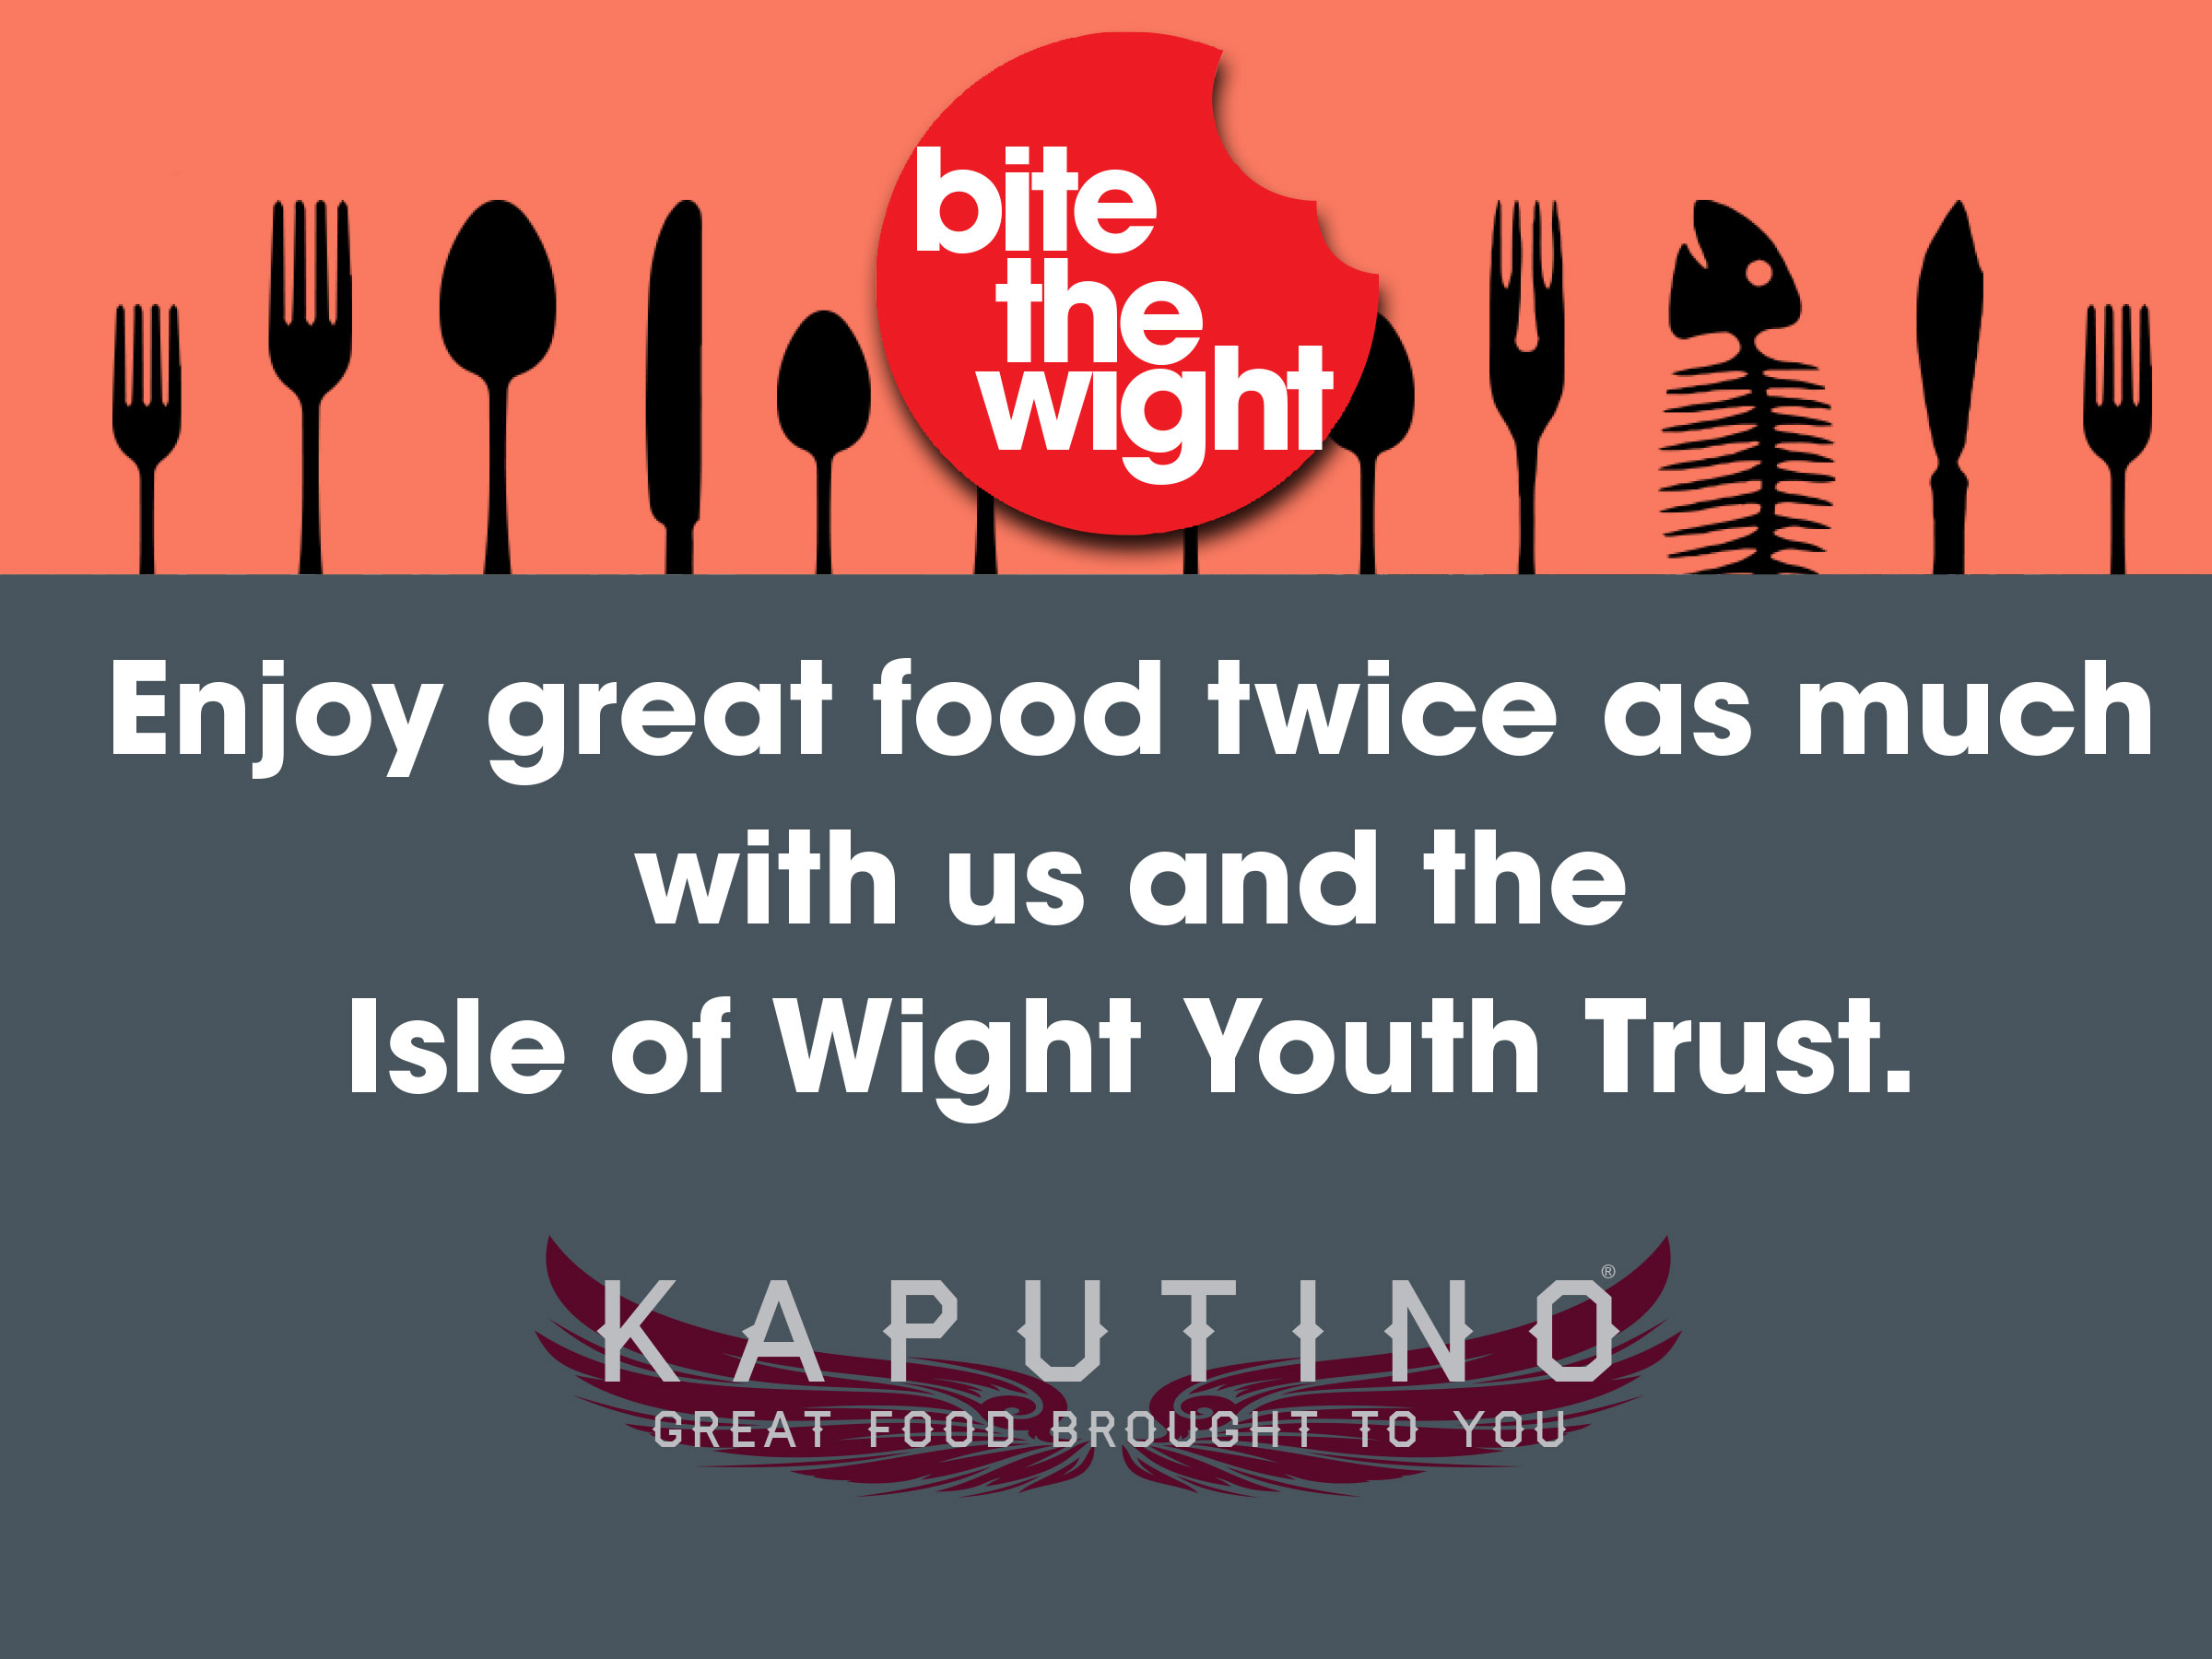 bite-the-wight-2014-with-kaputino-isle-of-wight-sandwich-round-for-great-food-brough-to-you